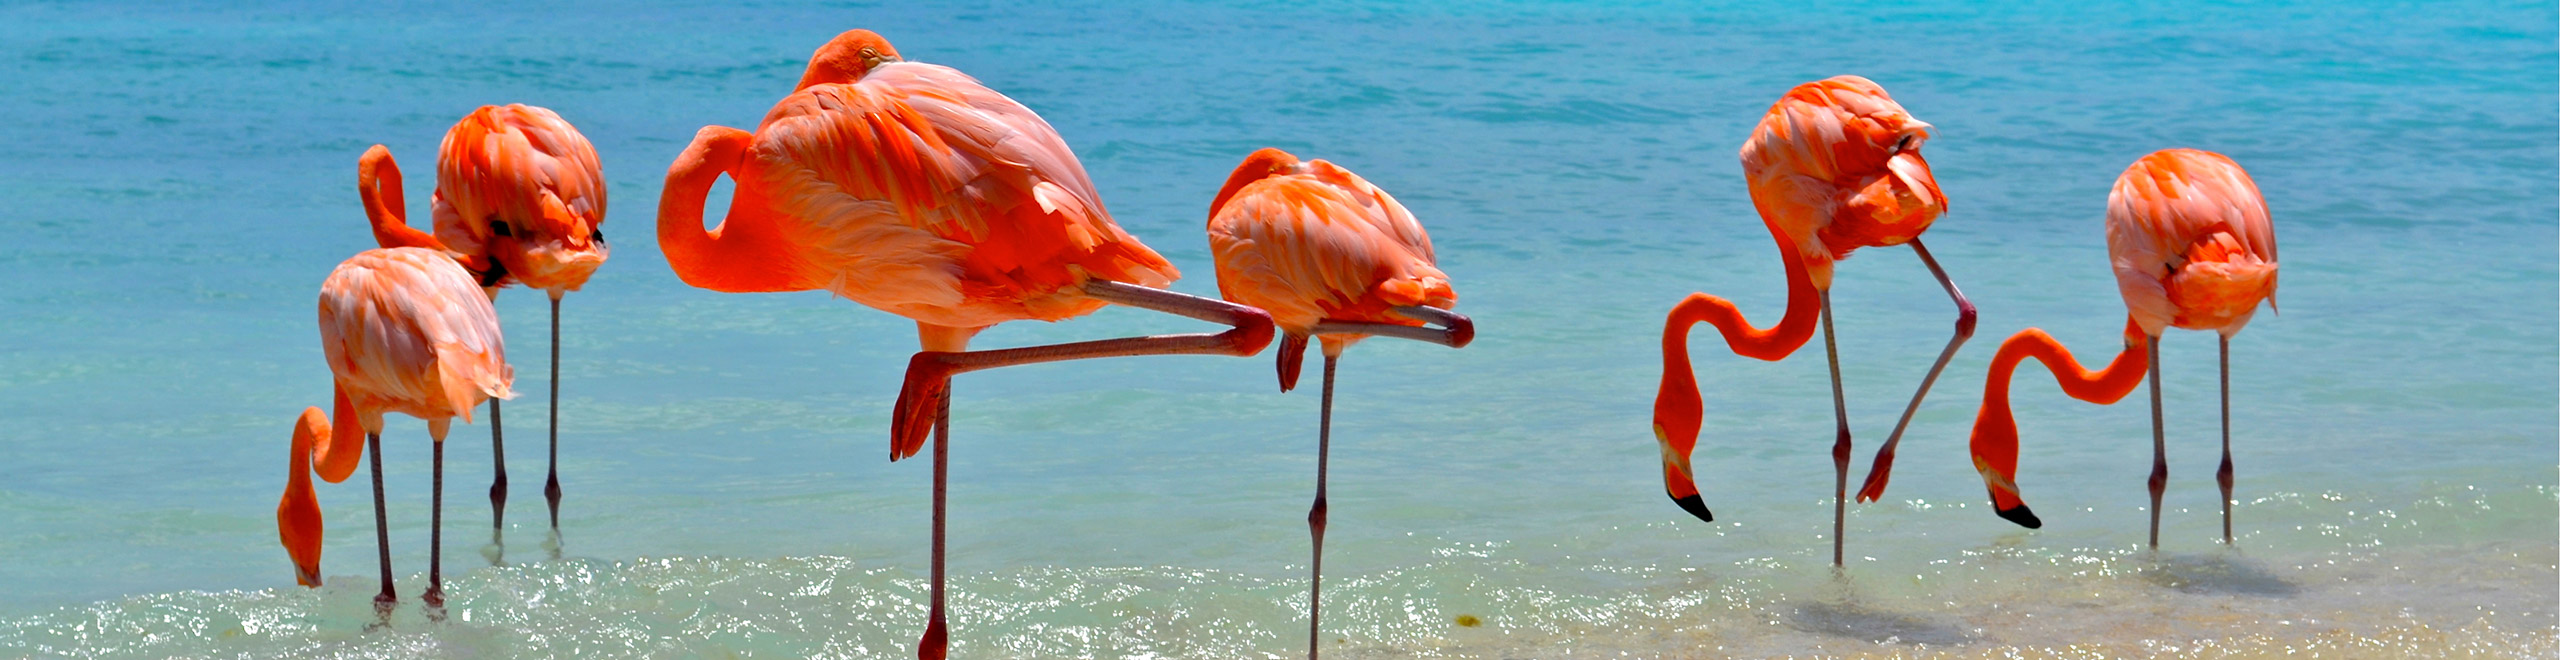 Flamingoes-on-the-Beach.jpg